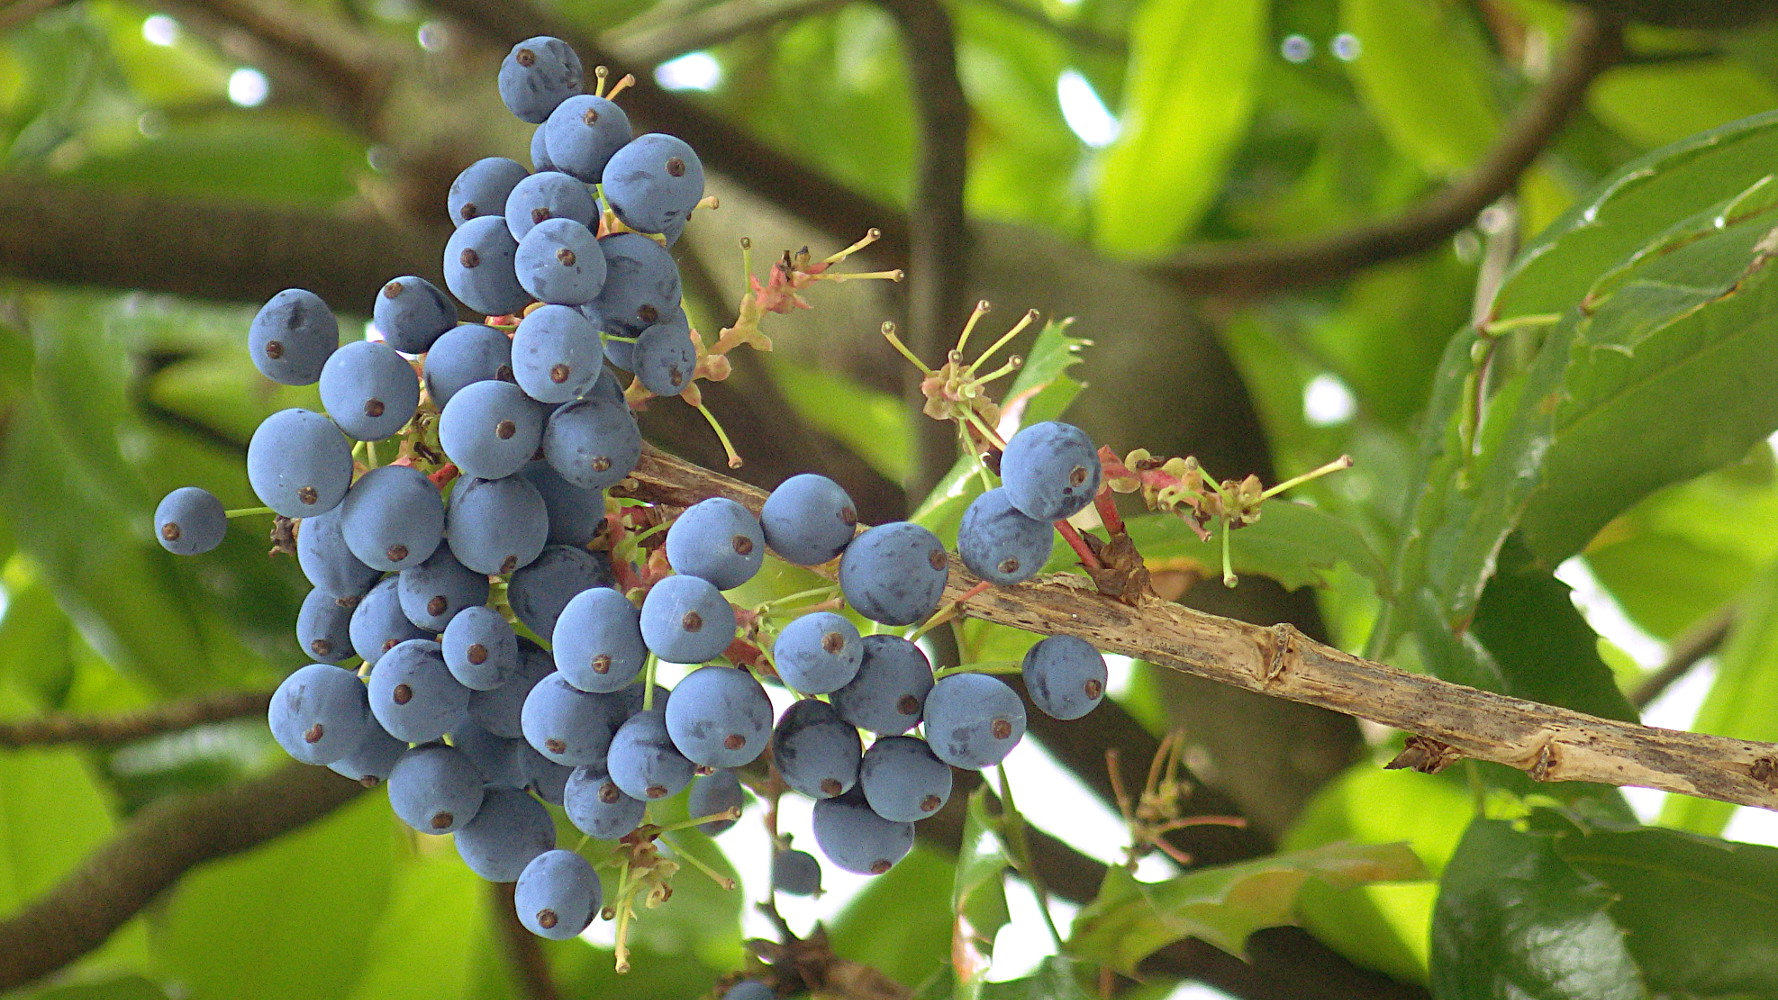 These Sour Grapes May Be Strong Medicine Sqwabb